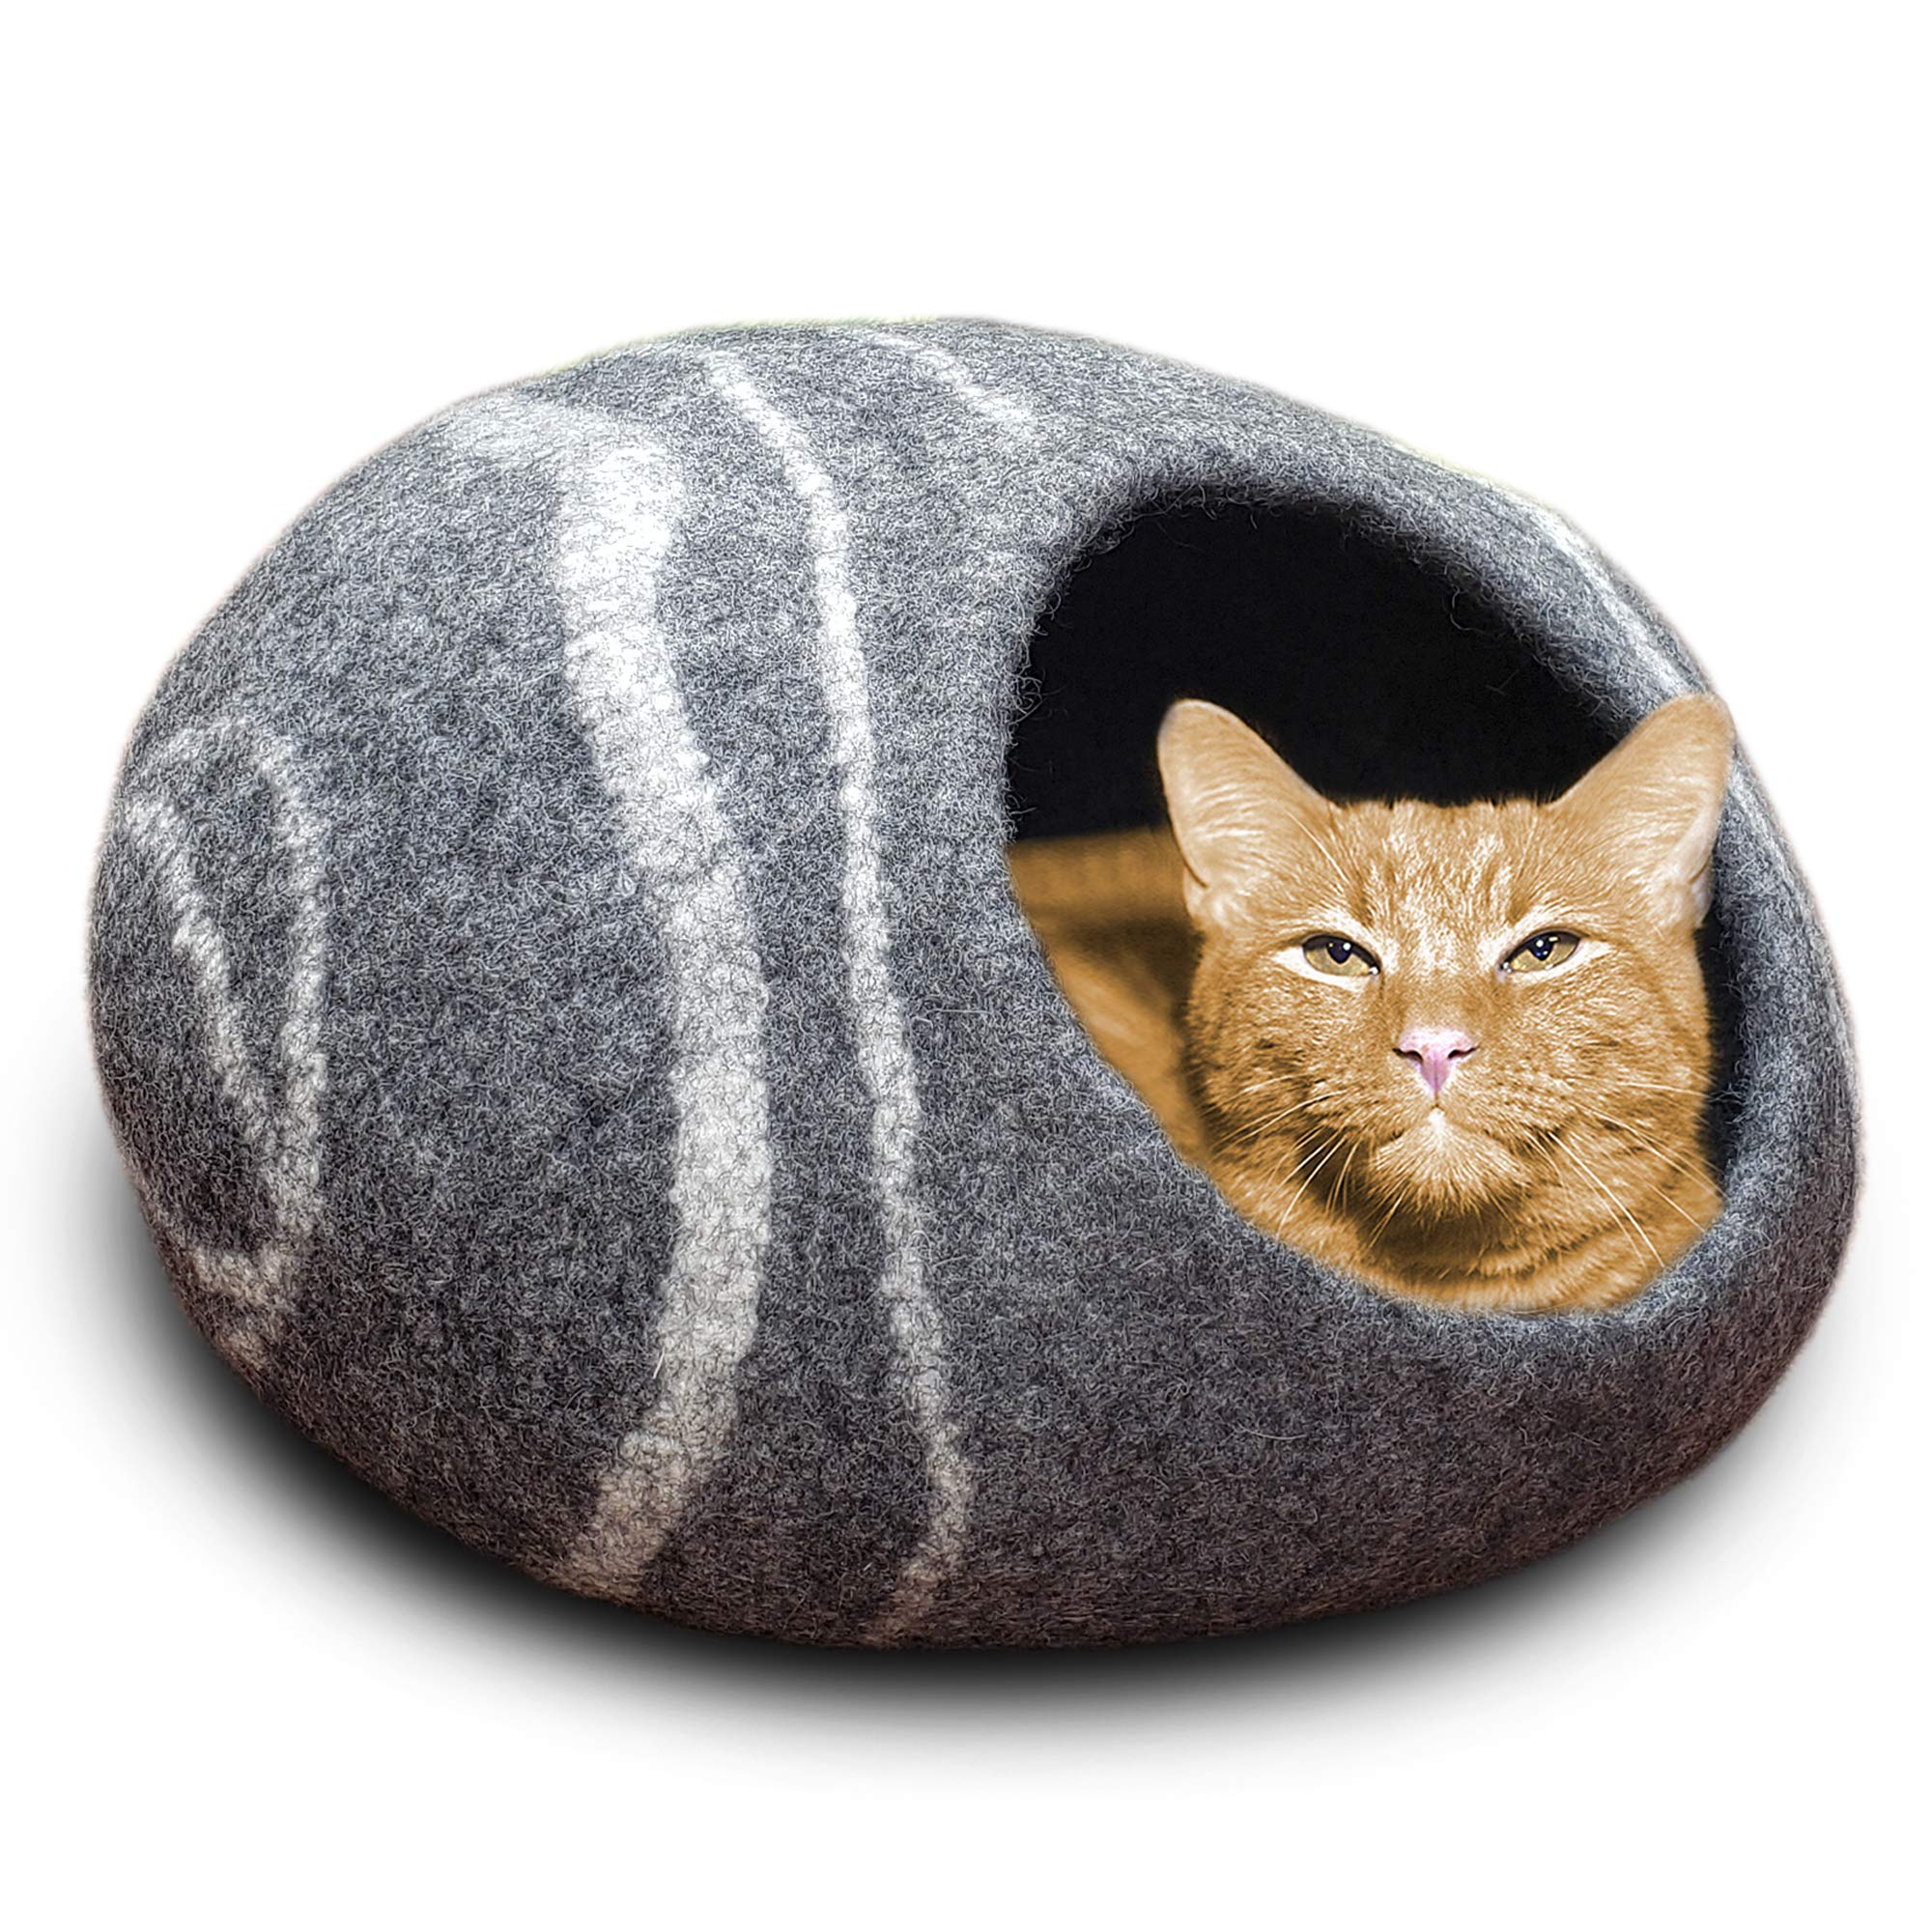 MEOWFIA Premium Felt Cat Bed Cave (Large) - Eco Friendly 100% Merino Wool Bed for Cats and Kittens (Large, Charcoal Stone) by MEOWFIA